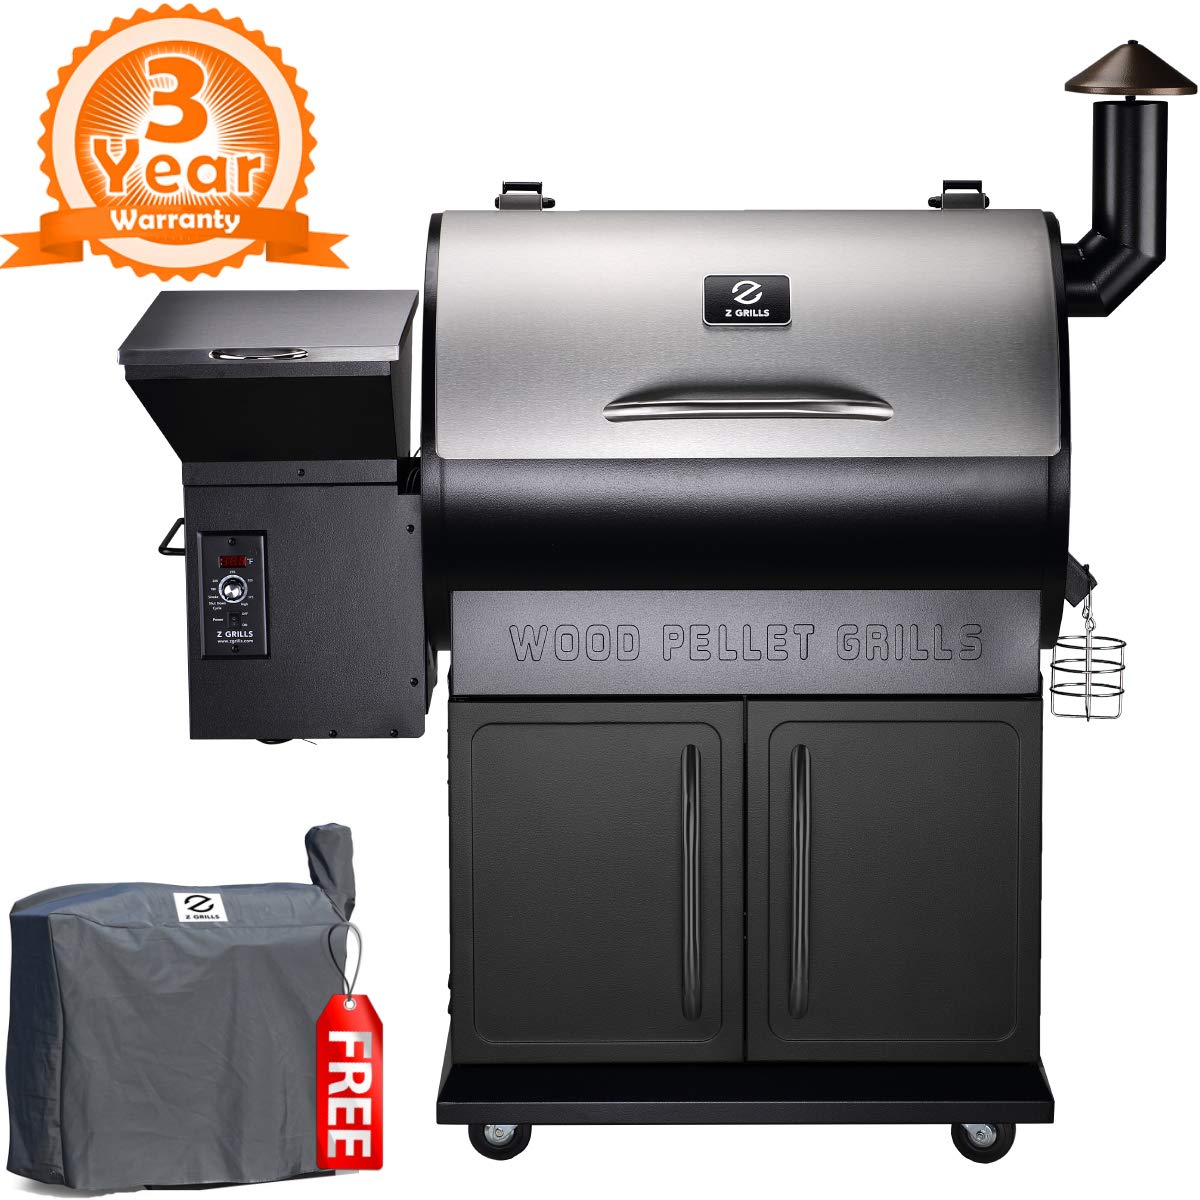 Z Grills ZPG-700E 2019 New Model Wood Pellet Grill & Smoker, 8 in 1 BBQ Grill Auto Temperature Control 700 sq inch Cooking Area Silver & Black Cover Included